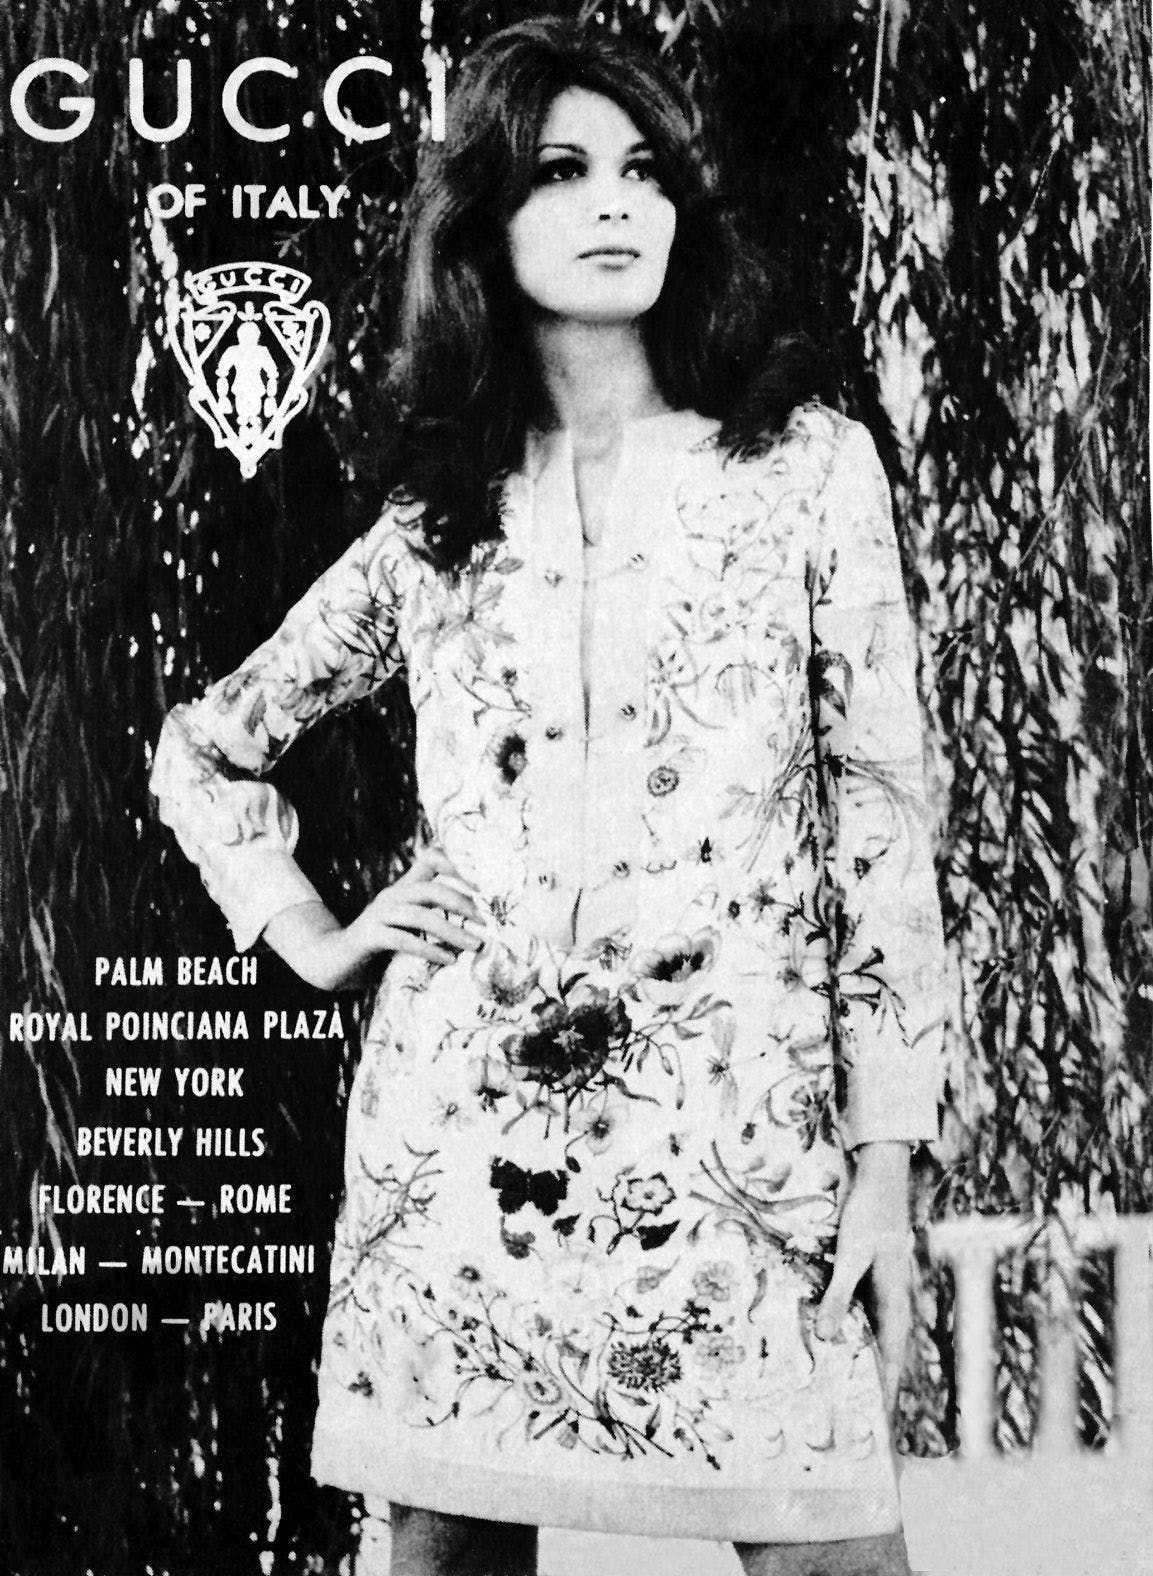 Vintage black and white poster from Gucci campaign